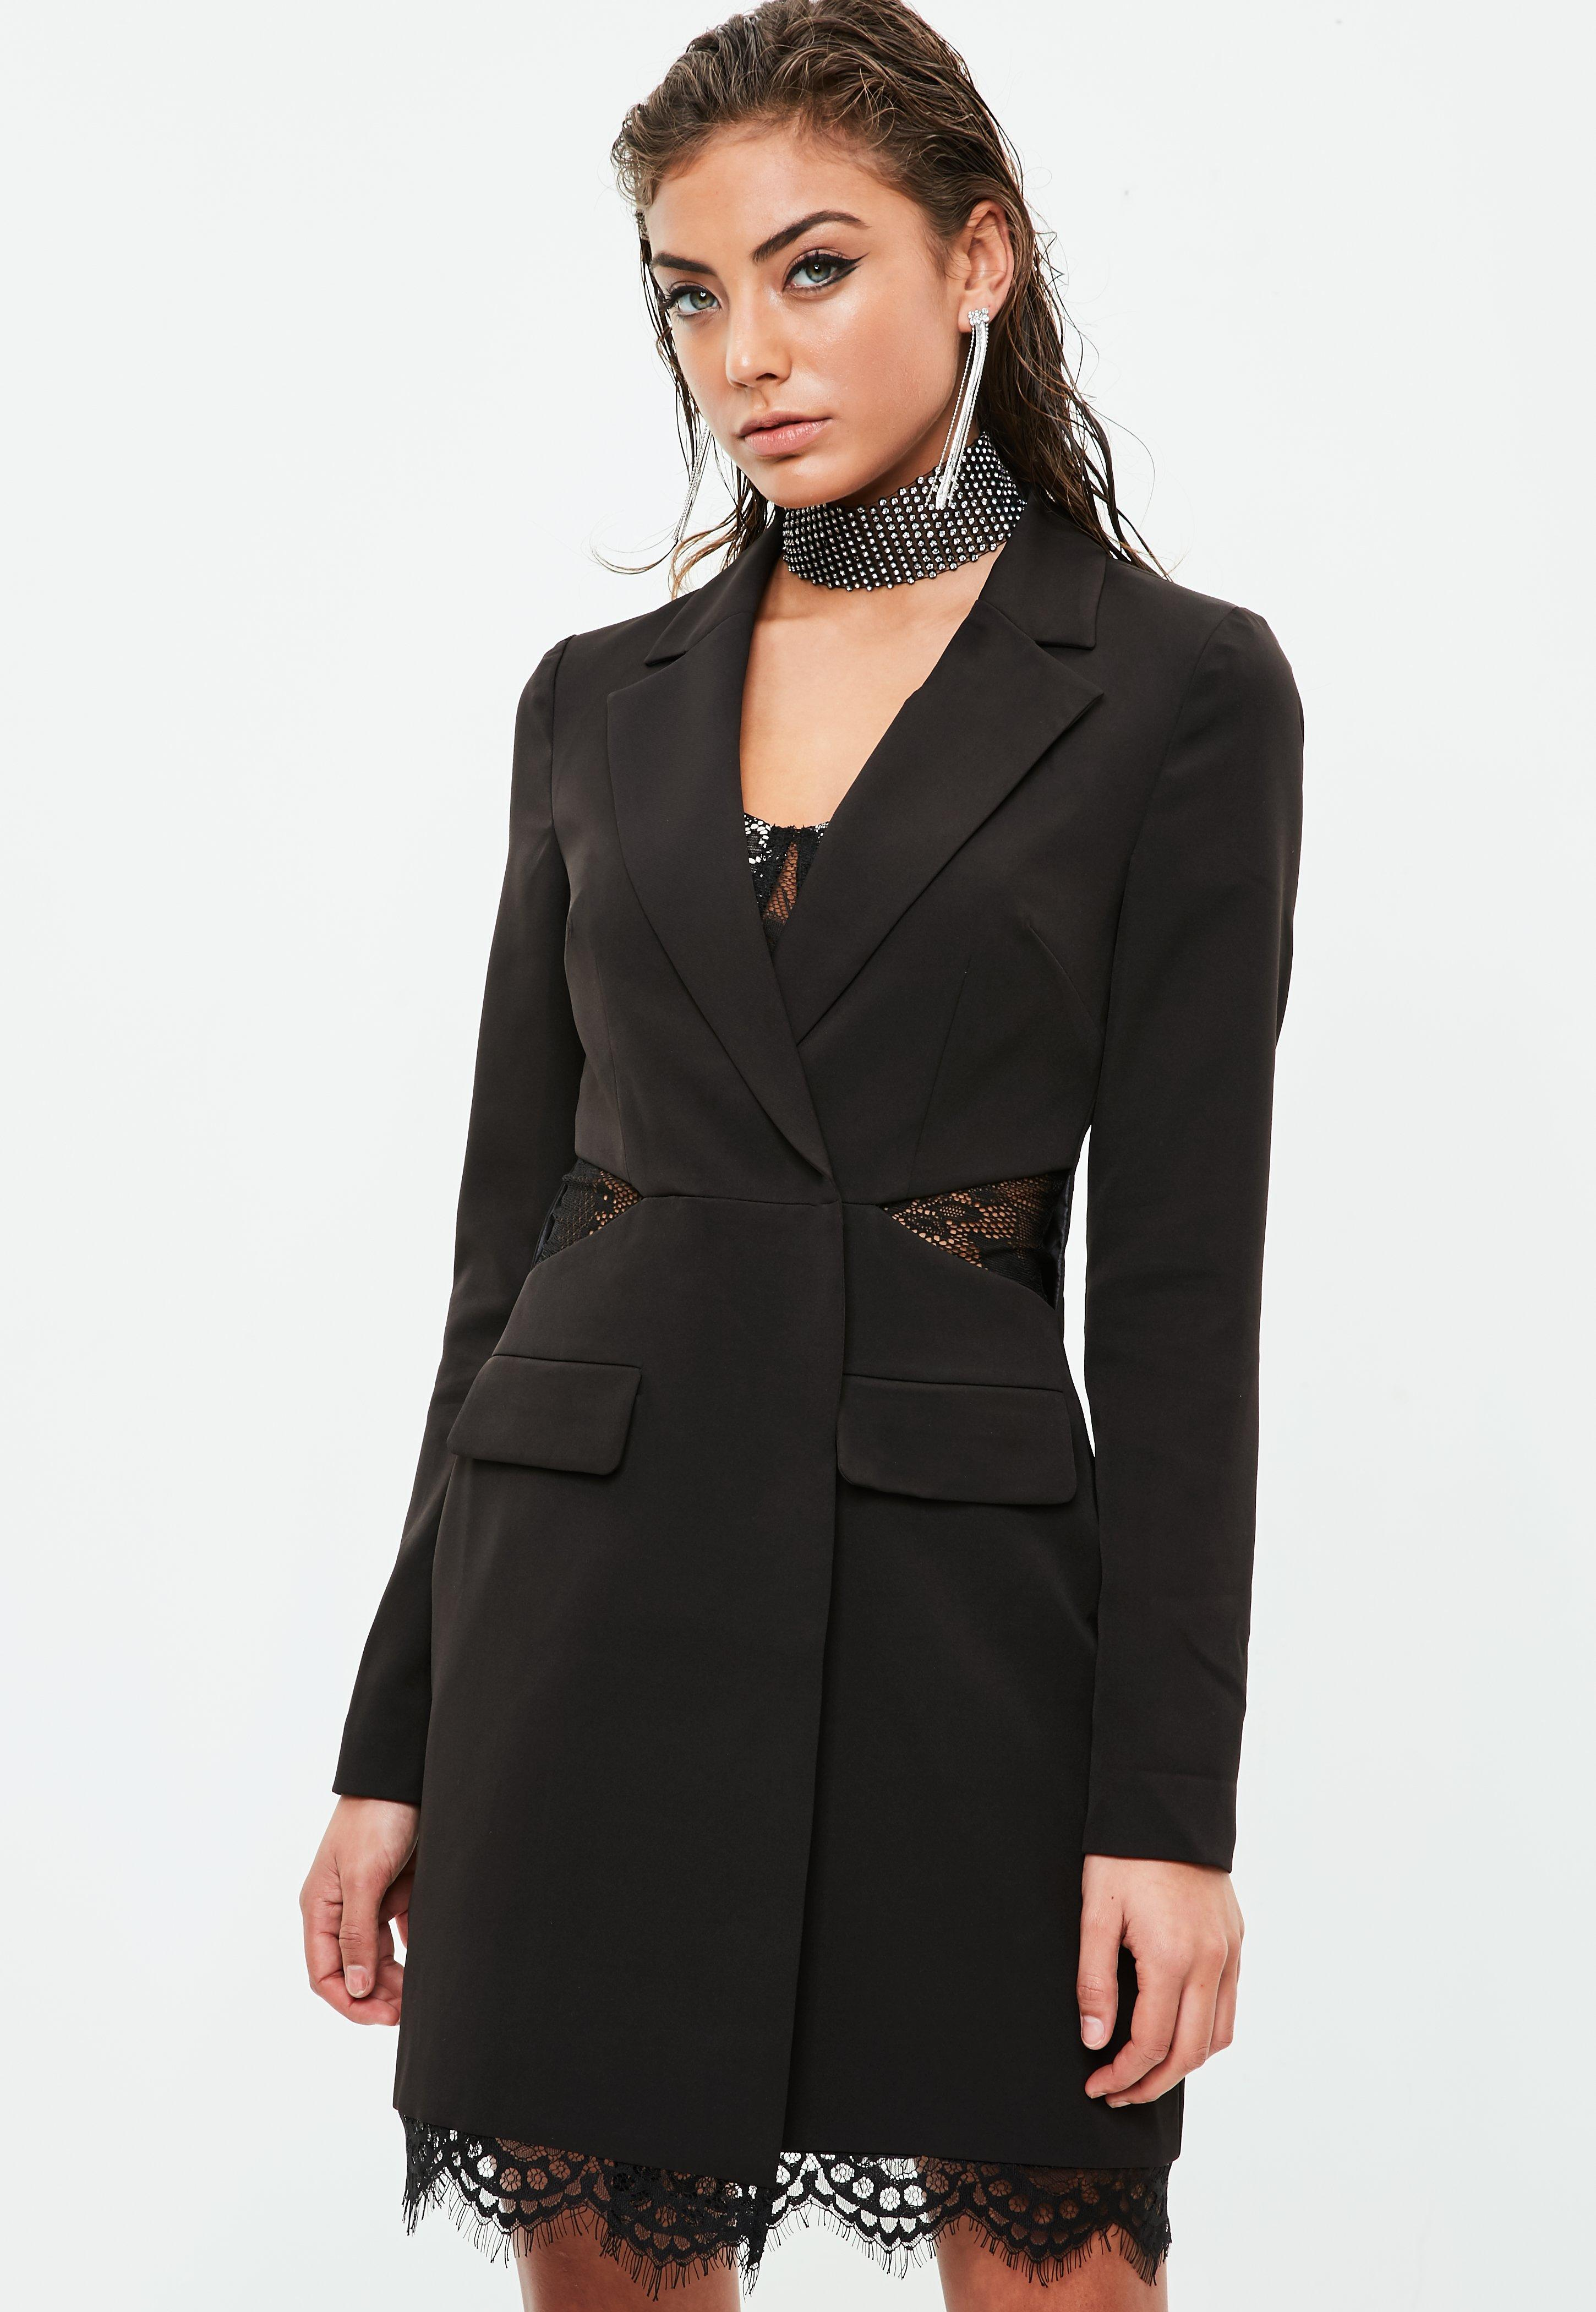 Bodycon Dresses | Tight & Fitted Dresses - Missguided